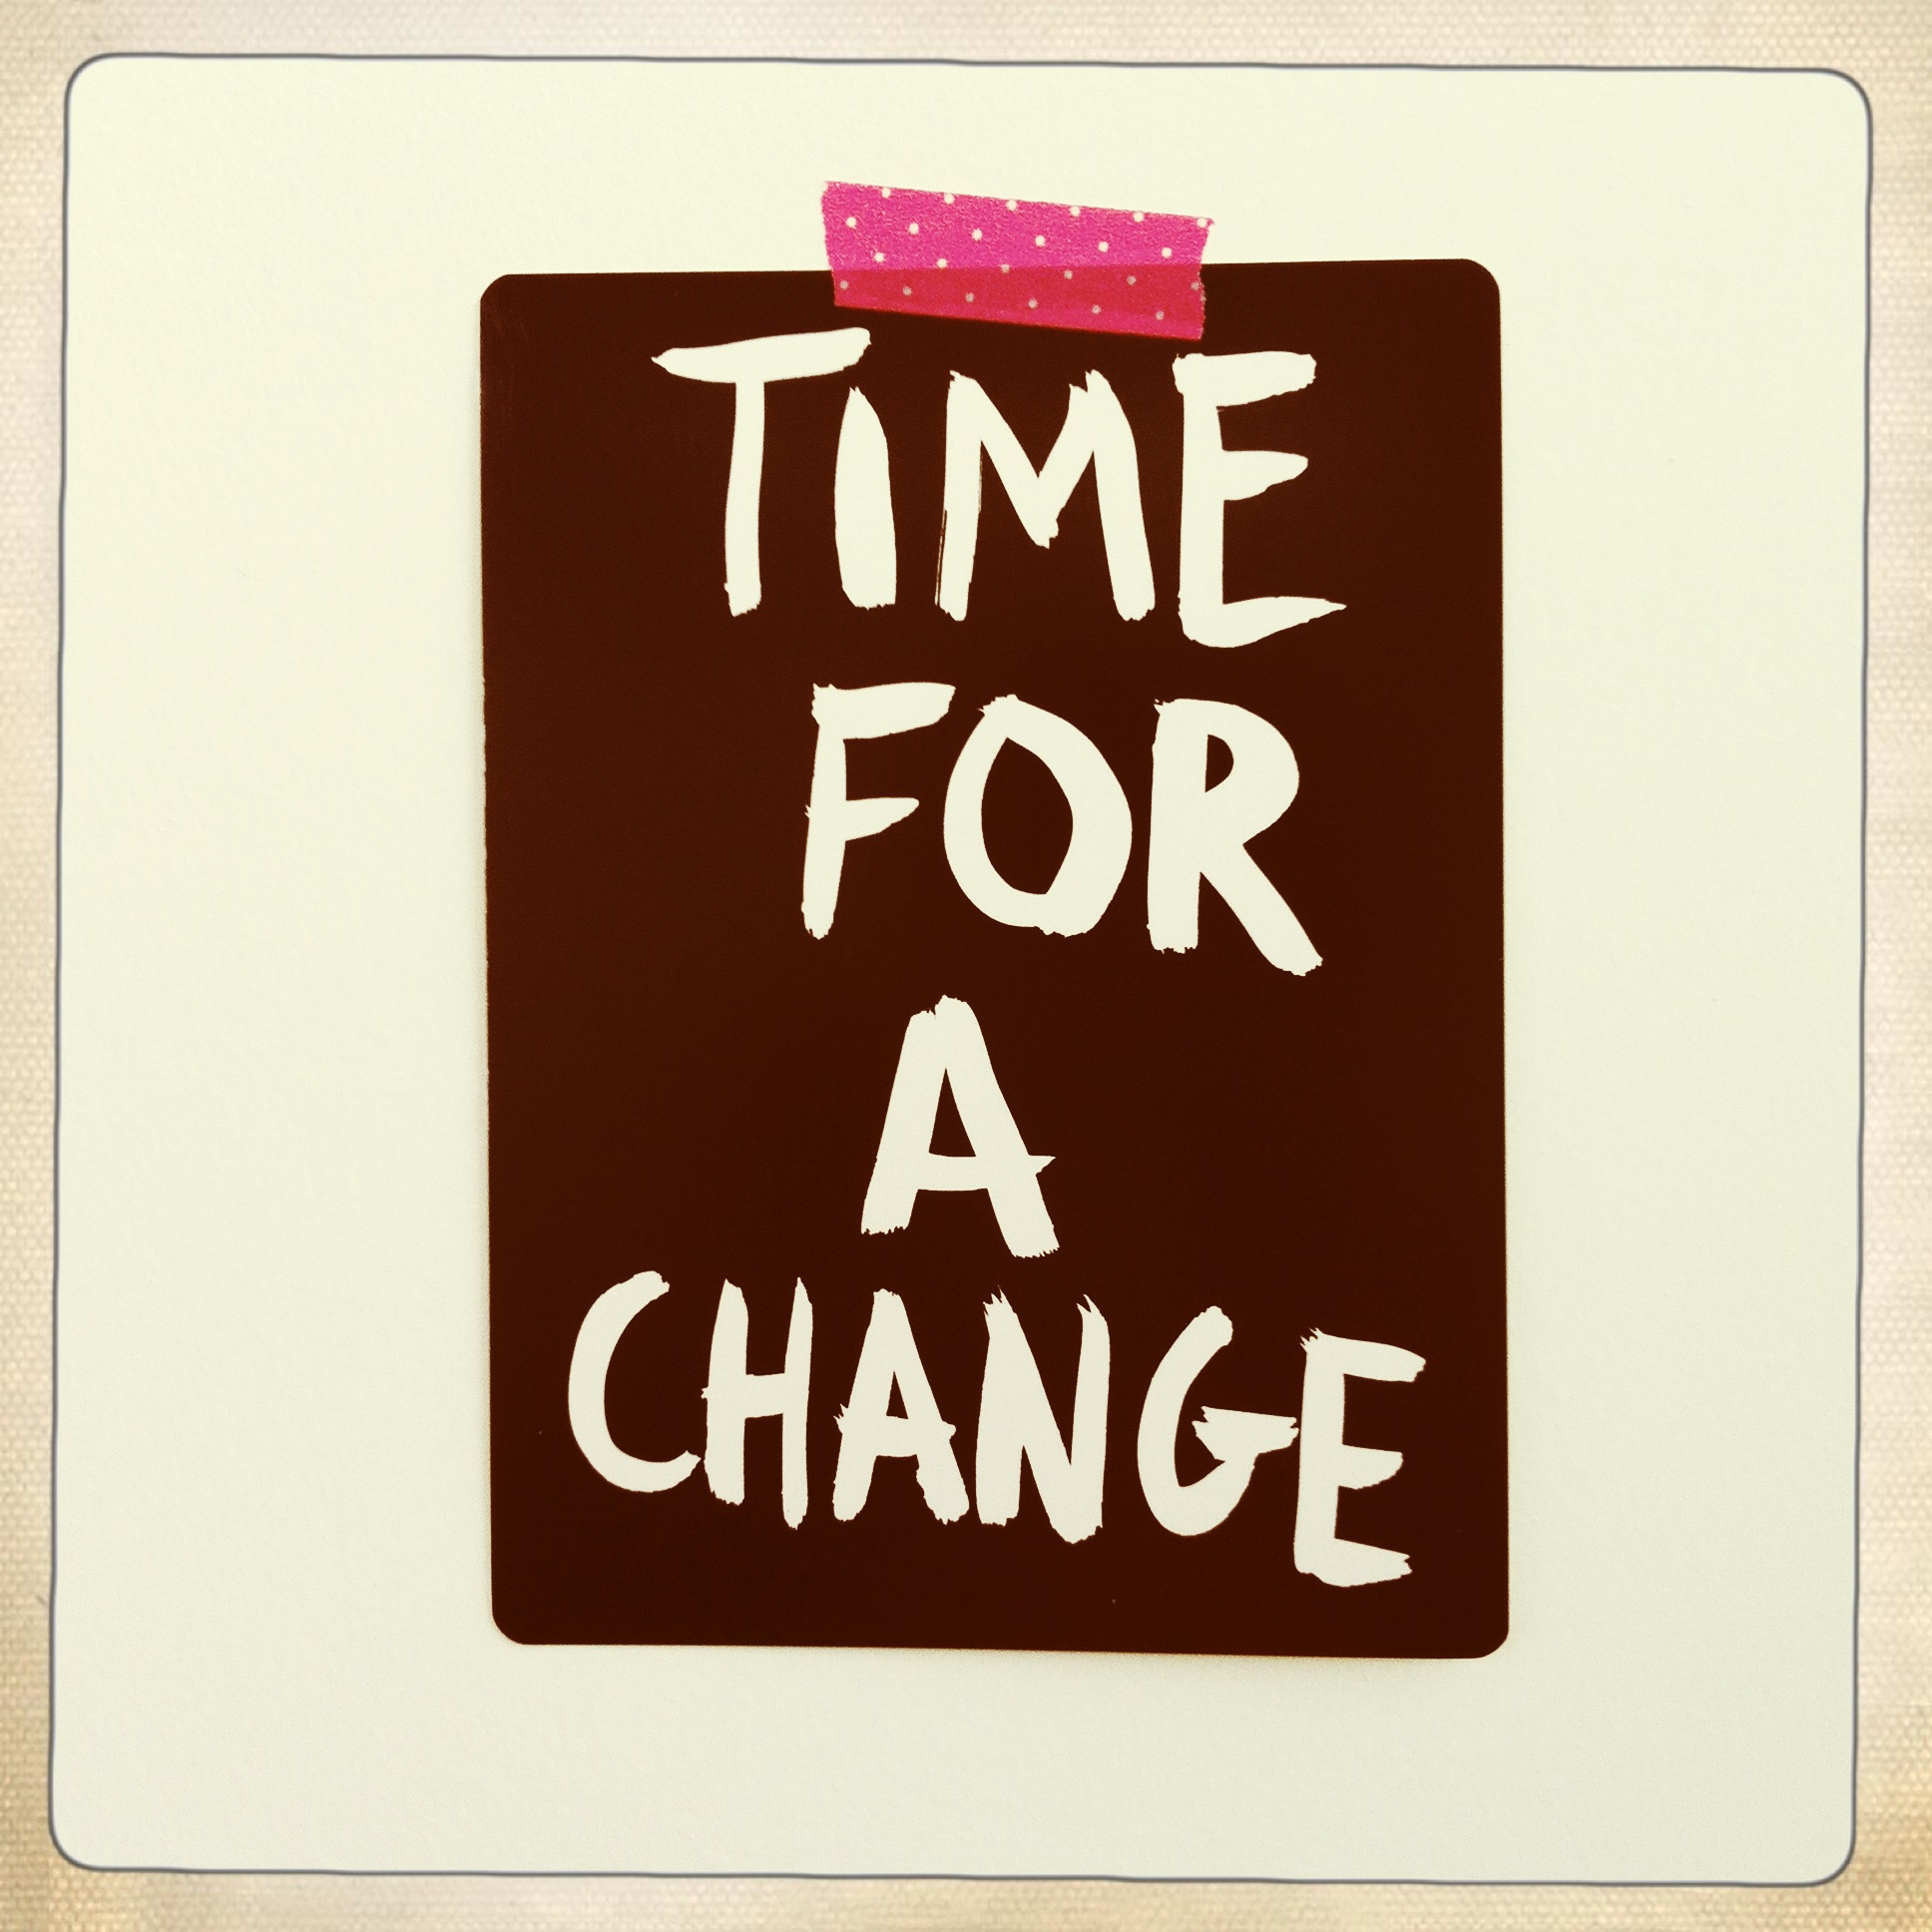 Time For Change Quotes Quotesgram